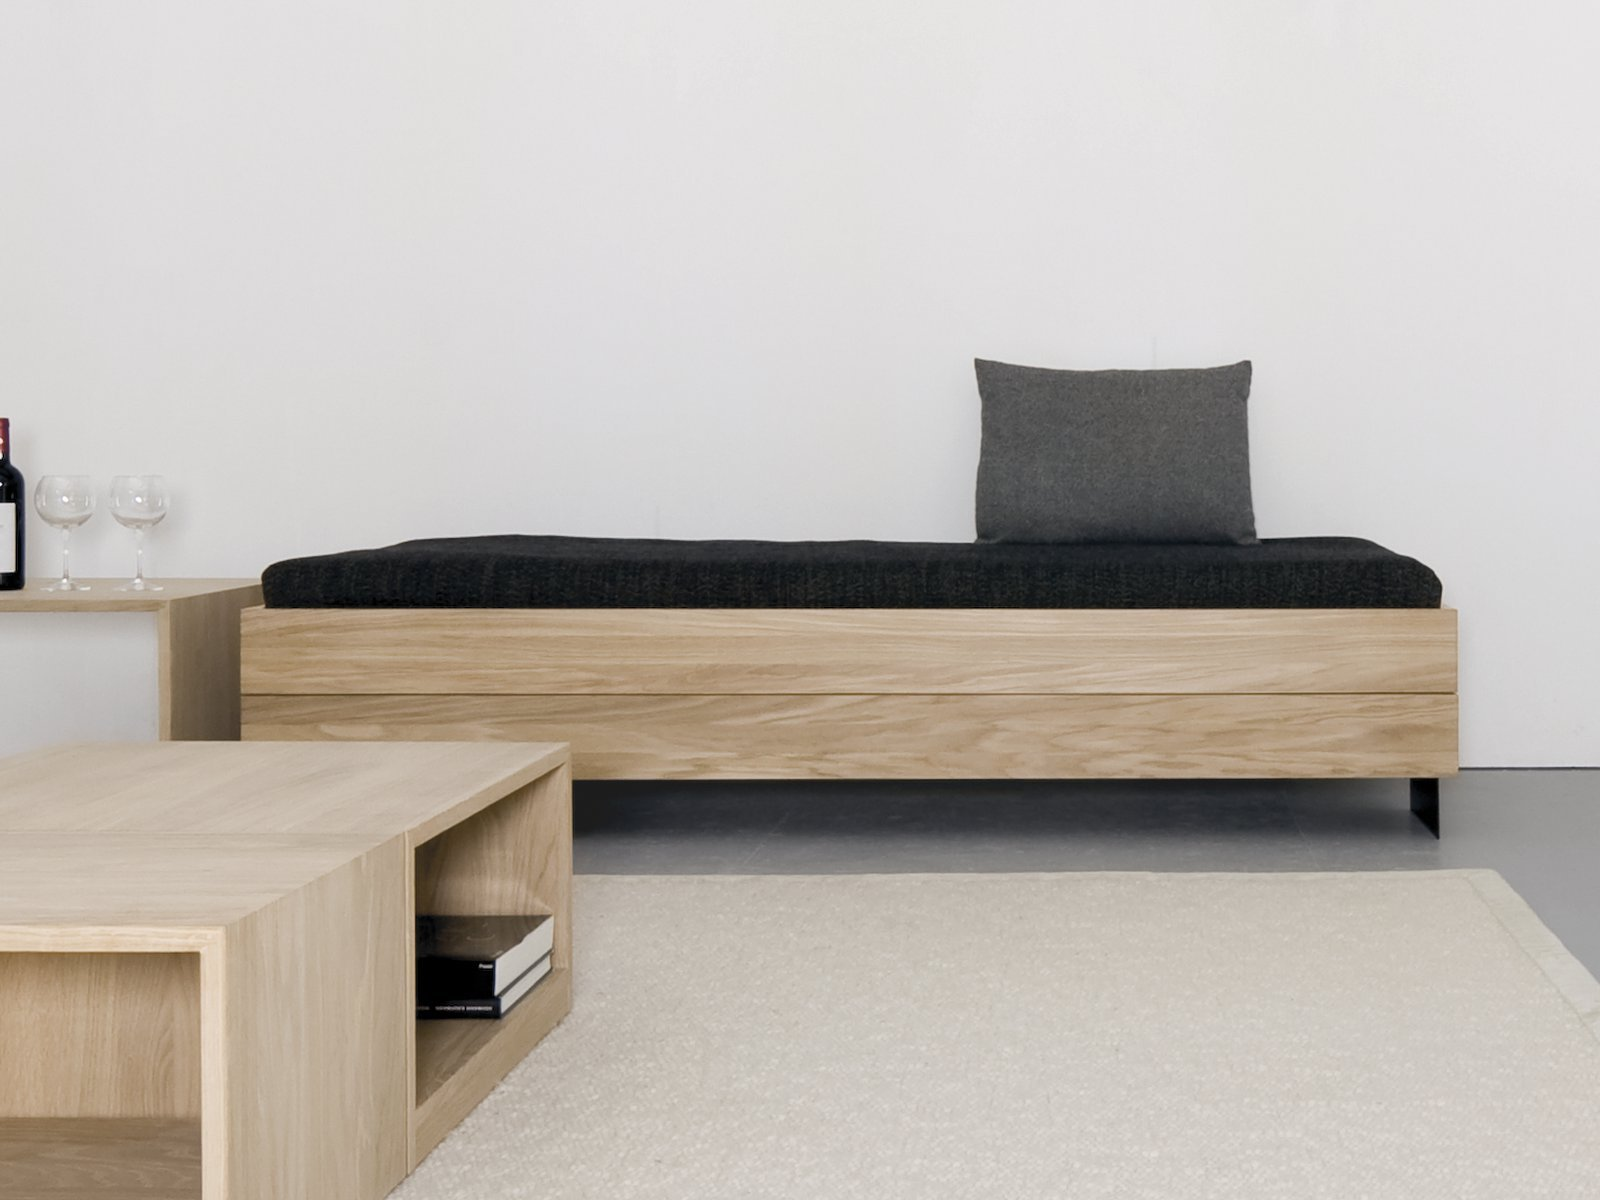 sofa bett aus massivem holz iku by sanktjohanser design matthias hubert sanktjohanser. Black Bedroom Furniture Sets. Home Design Ideas